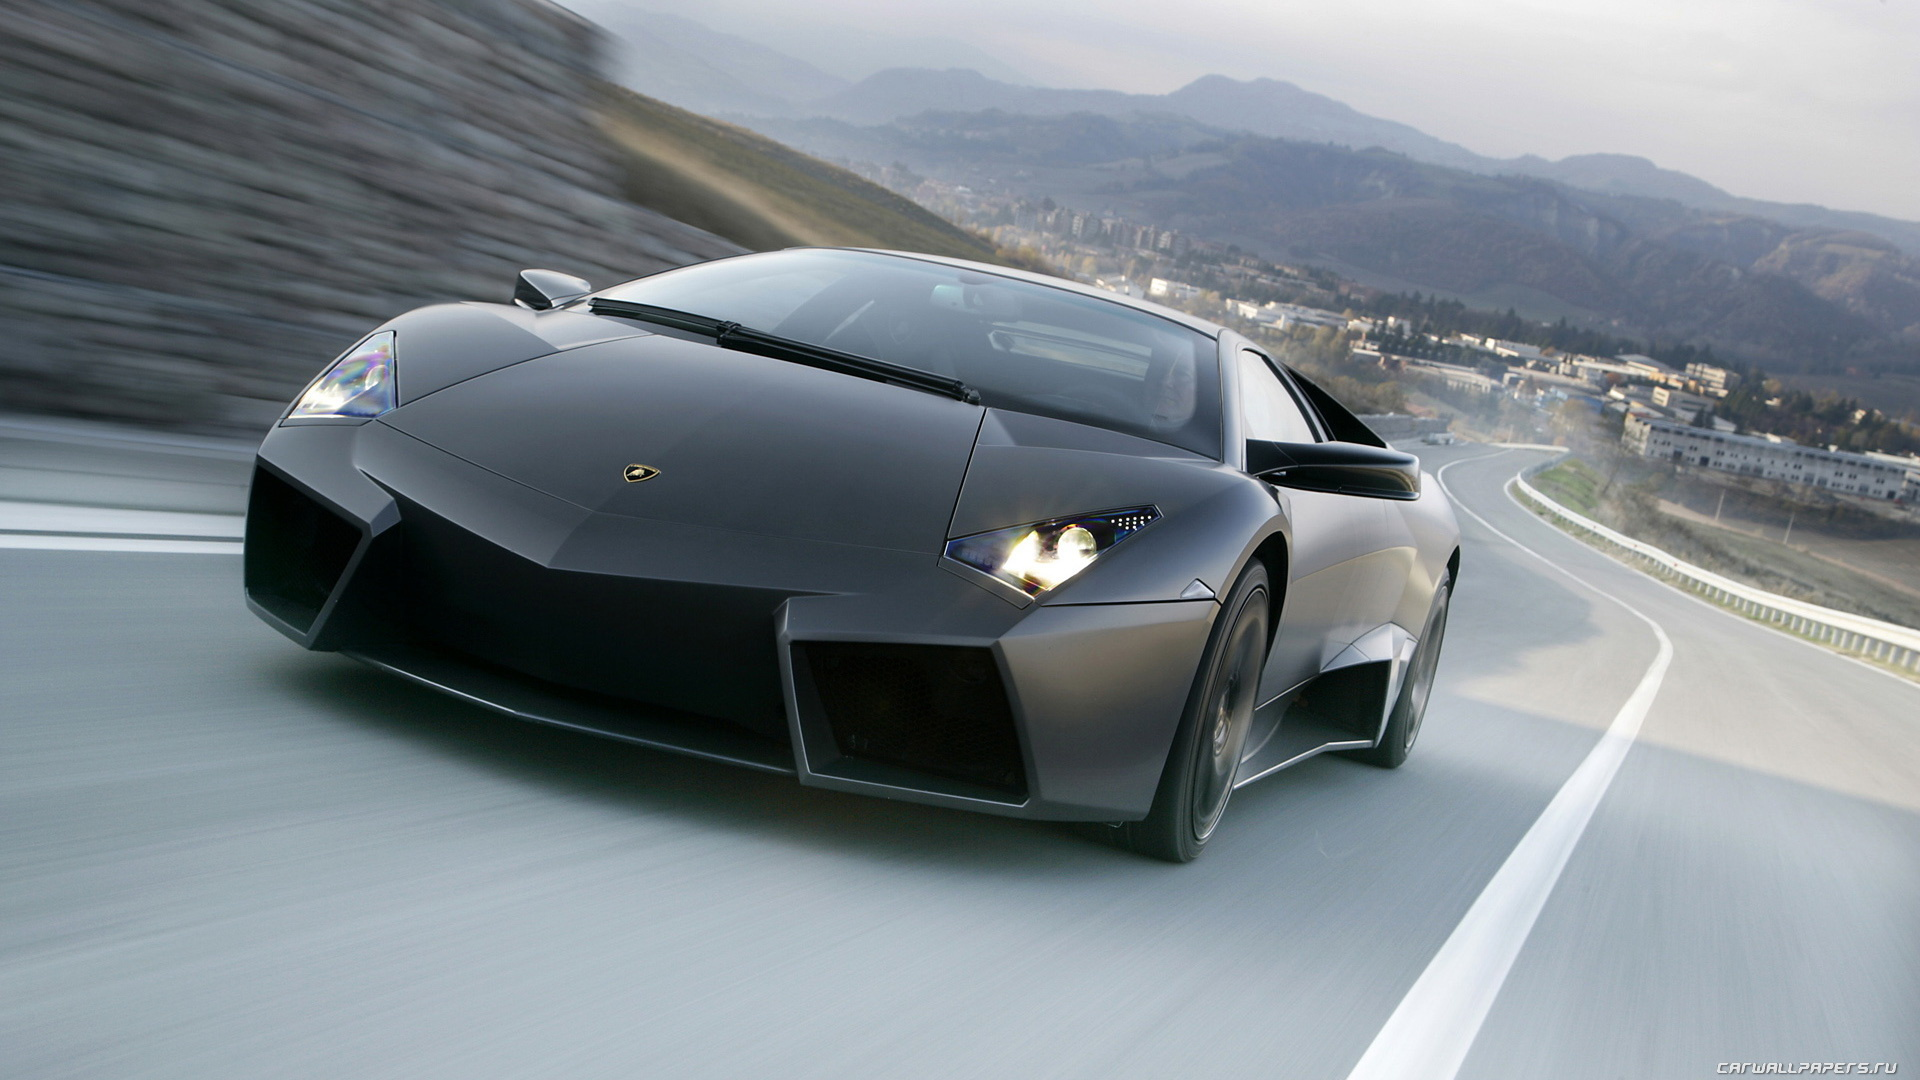 cars wallpaper set 6 « awesome wallpapers